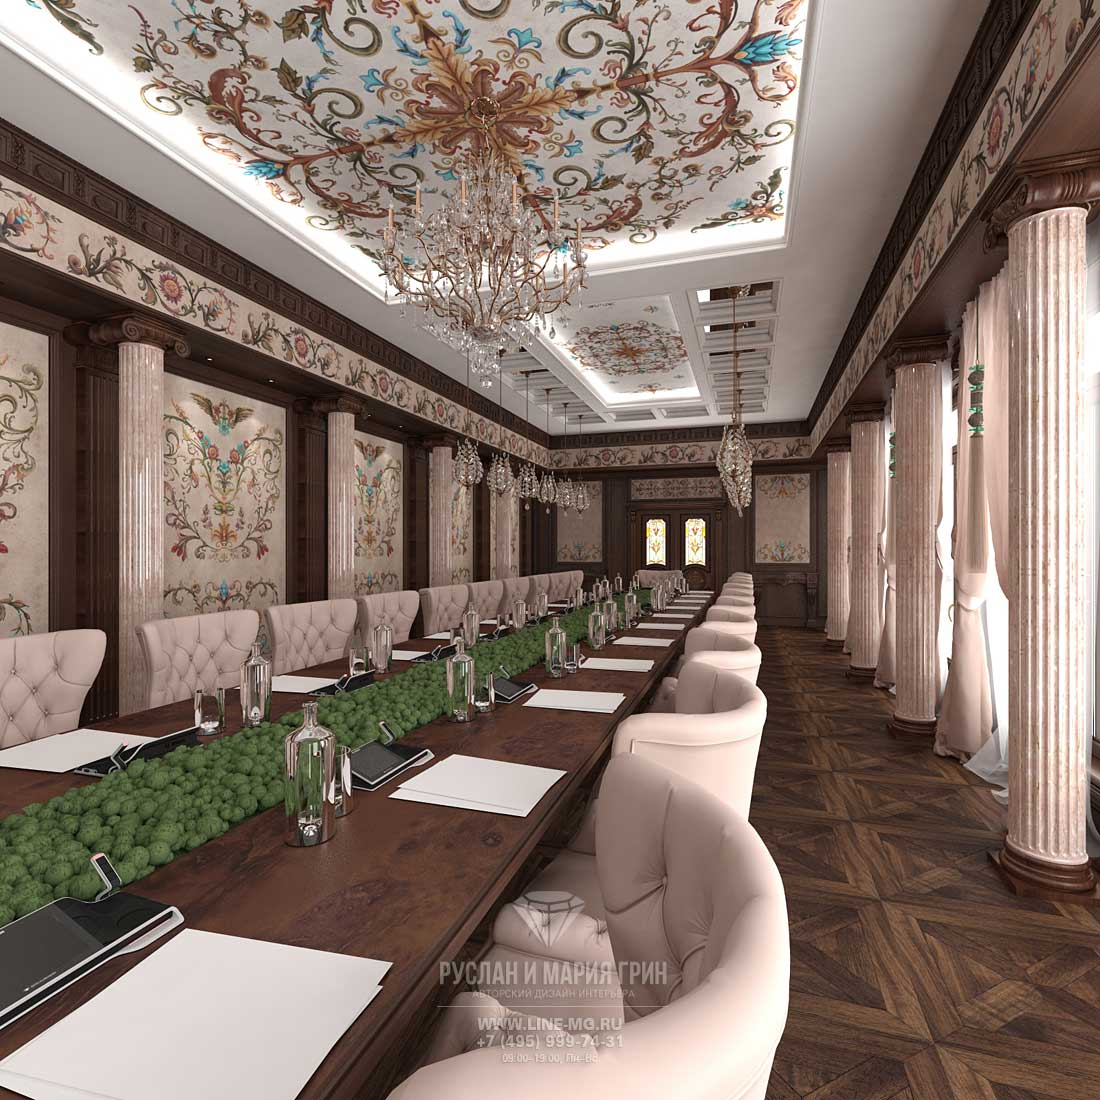 The design of the conference room in the Empire style